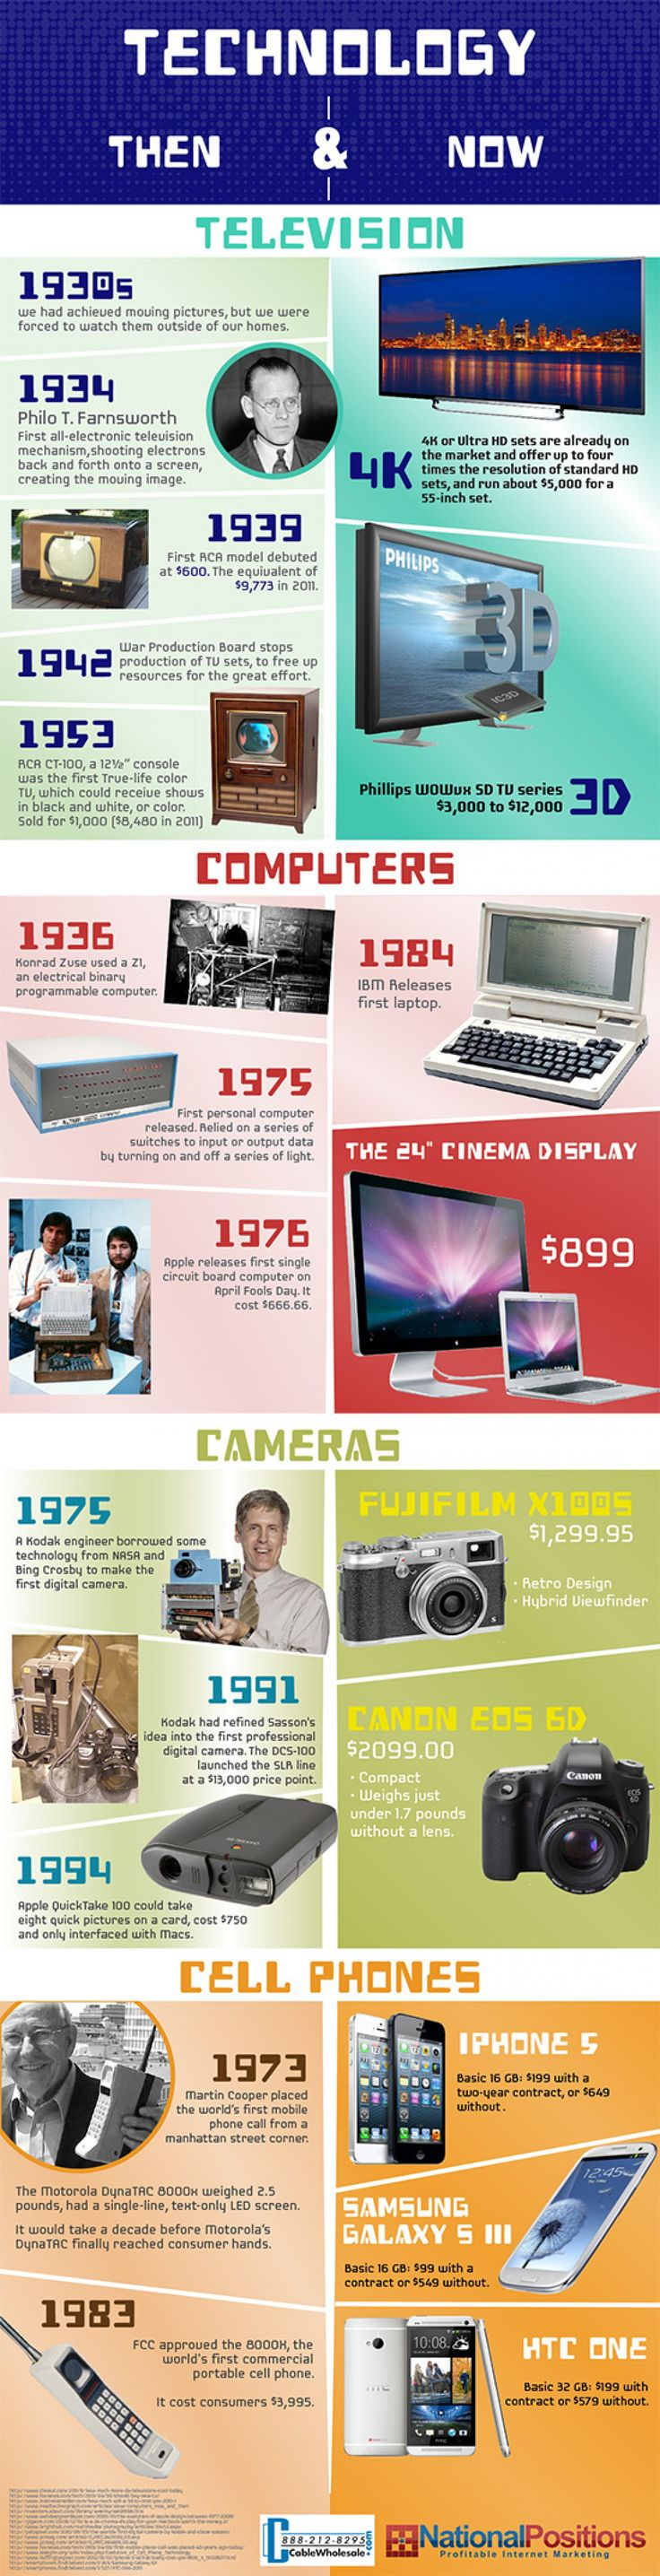 Technology Then and Now - A side by side of how things have changed over the years